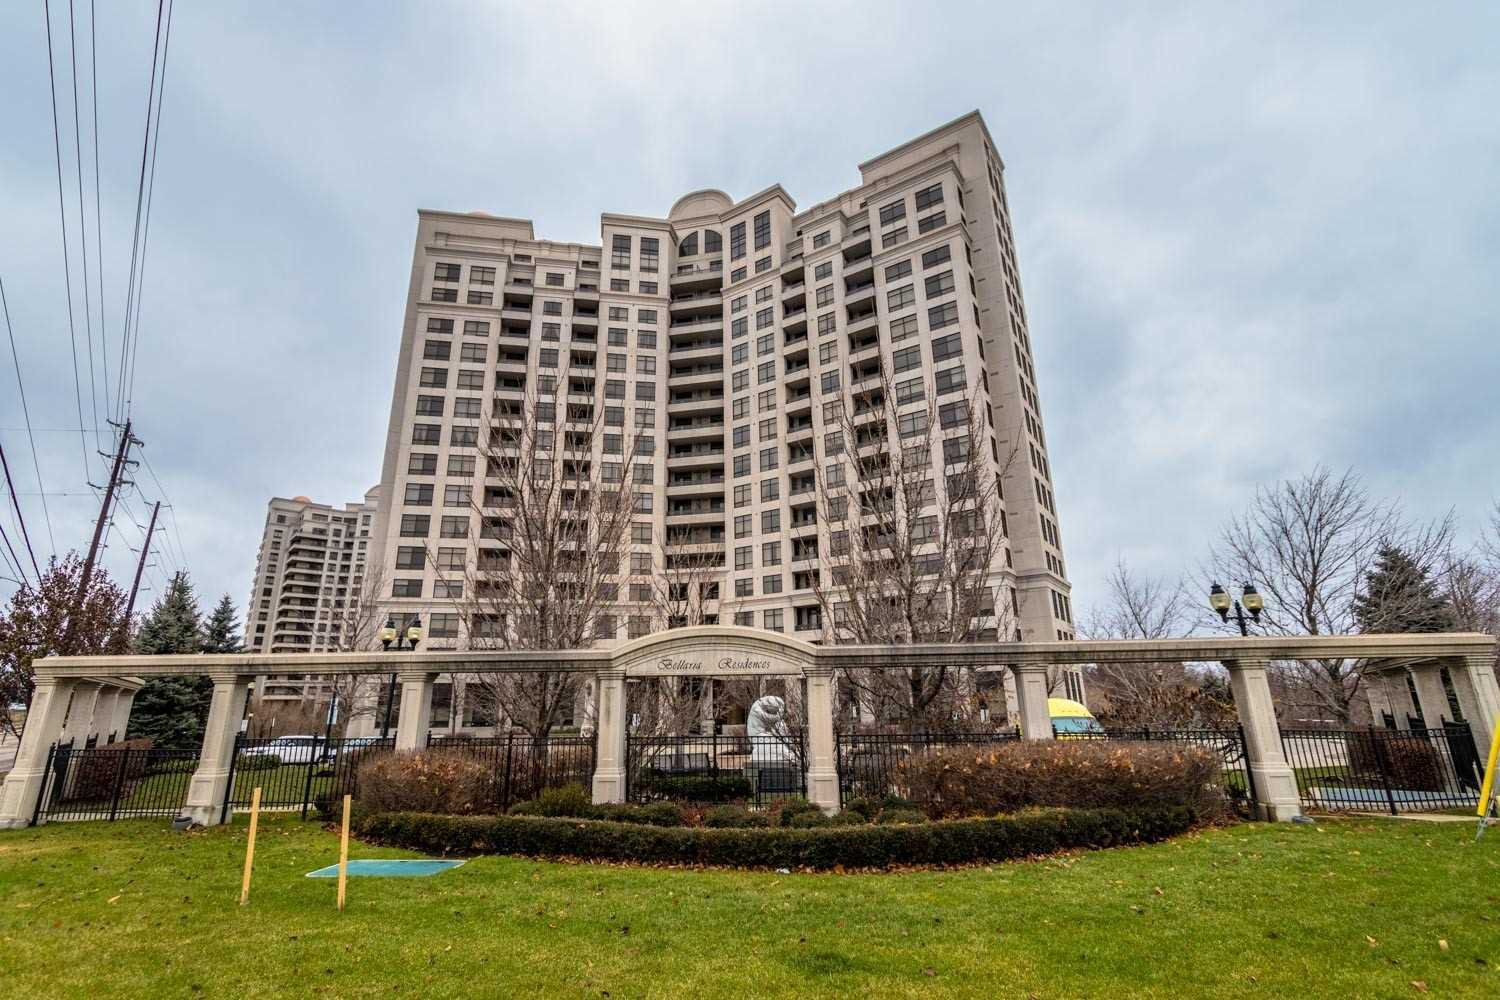 Main Photo: 9225 JANE STREET #512 IN MAPLE VAUGHAN BELLARIA CONDO FOR SALE - $ 598,000